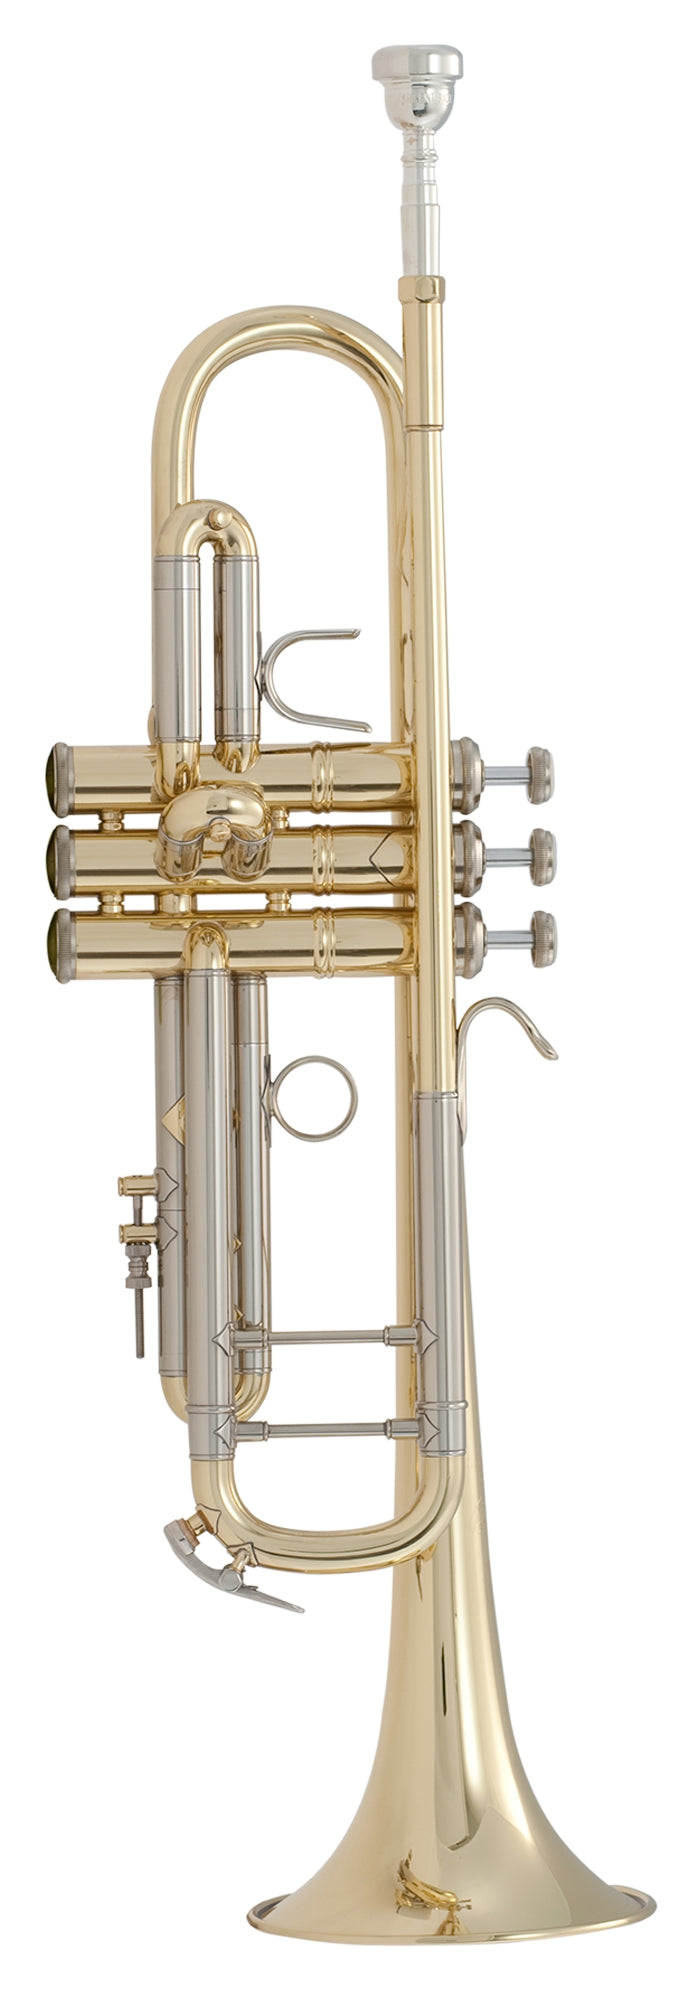 Bach 18037 Stradivarius B-Flat Trumpet Outfit